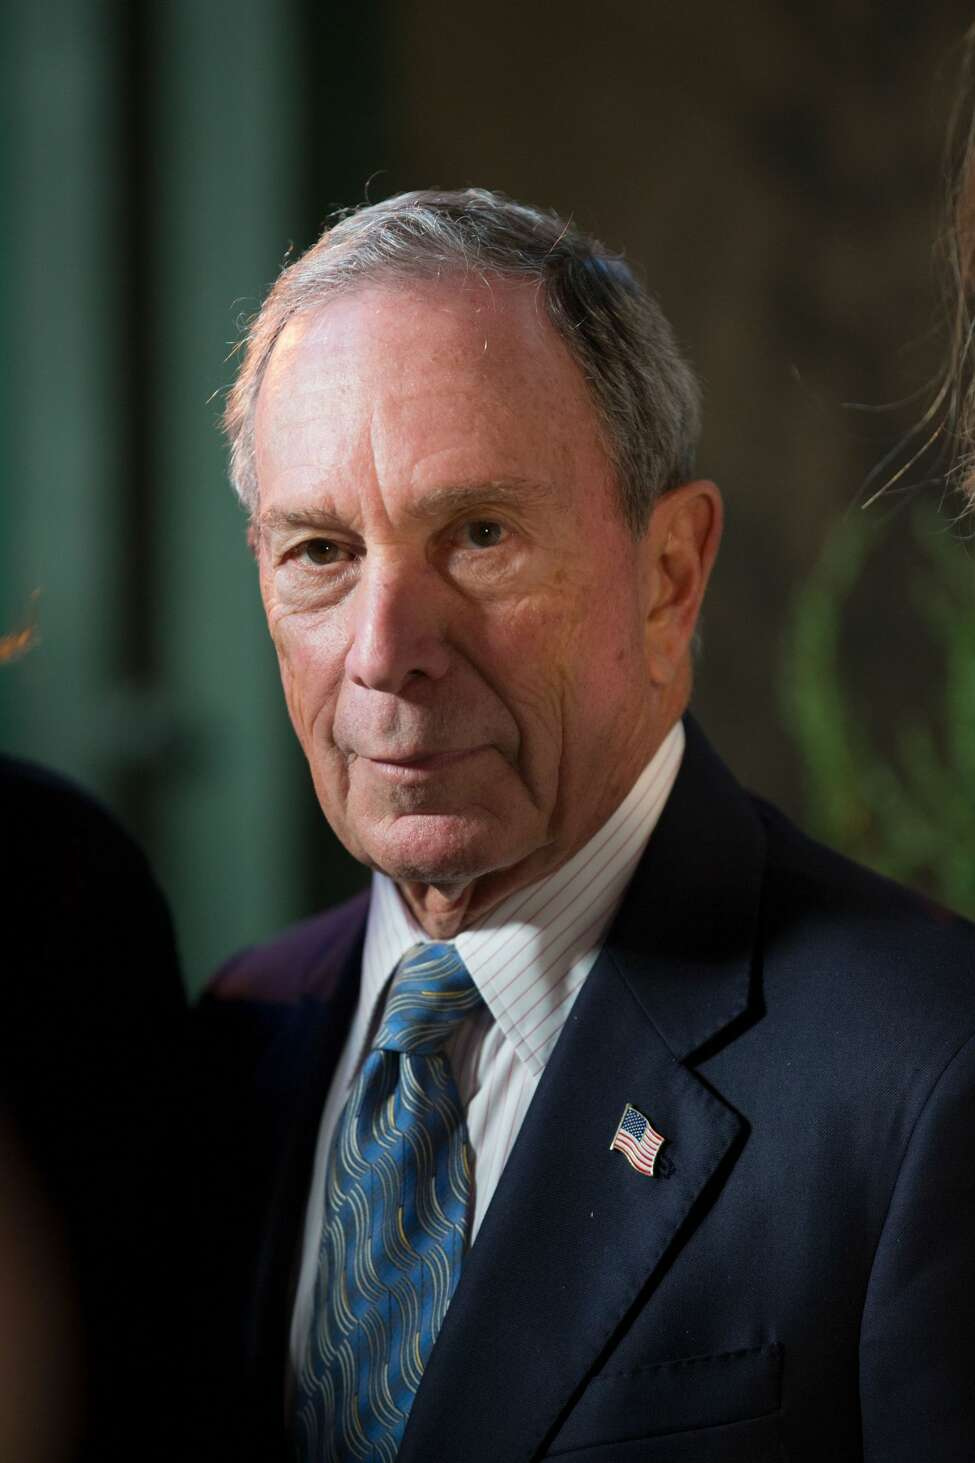 Michael Bloomberg, 77, is the 9th wealthiest person in the world, As CEO of his eponymous financial information and media company, Bloomberg is worth $55.4 billion. He lives in New York City and has donated $8 billion in his lifetime.